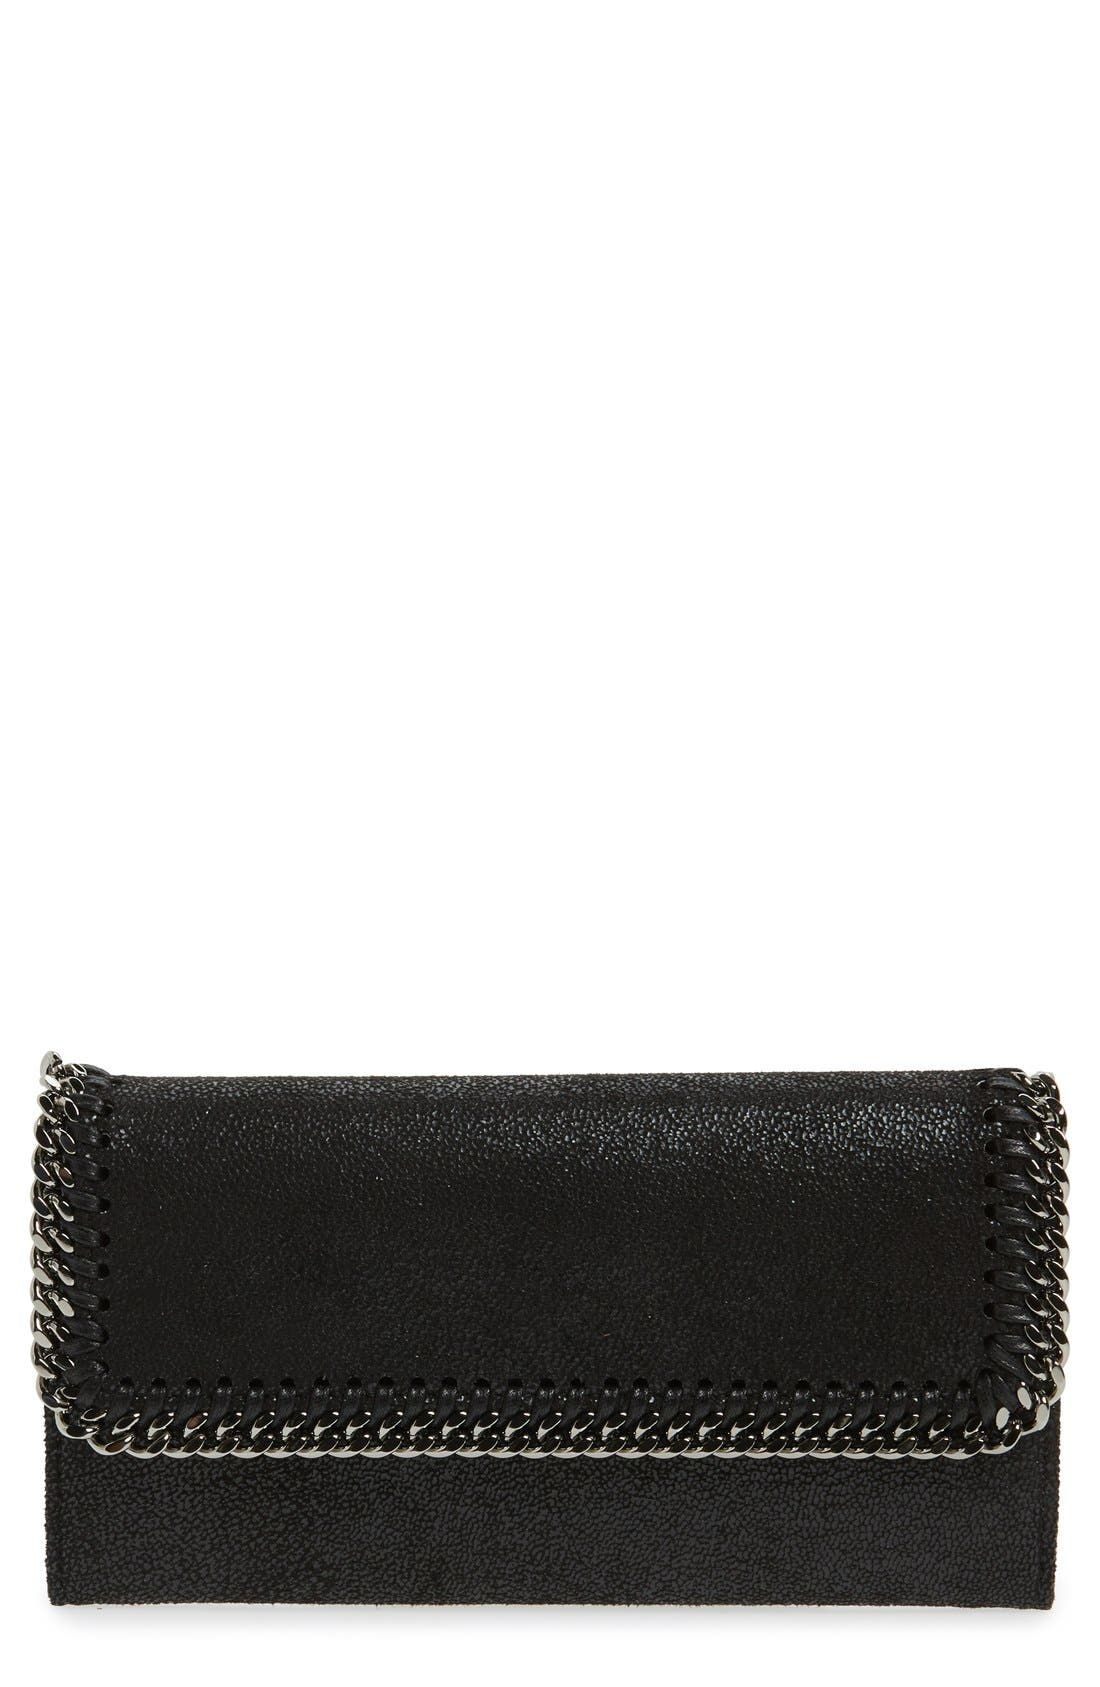 STELLA MCCARTNEY Falabella - Rainbow POP Faux Leather Continental Wallet